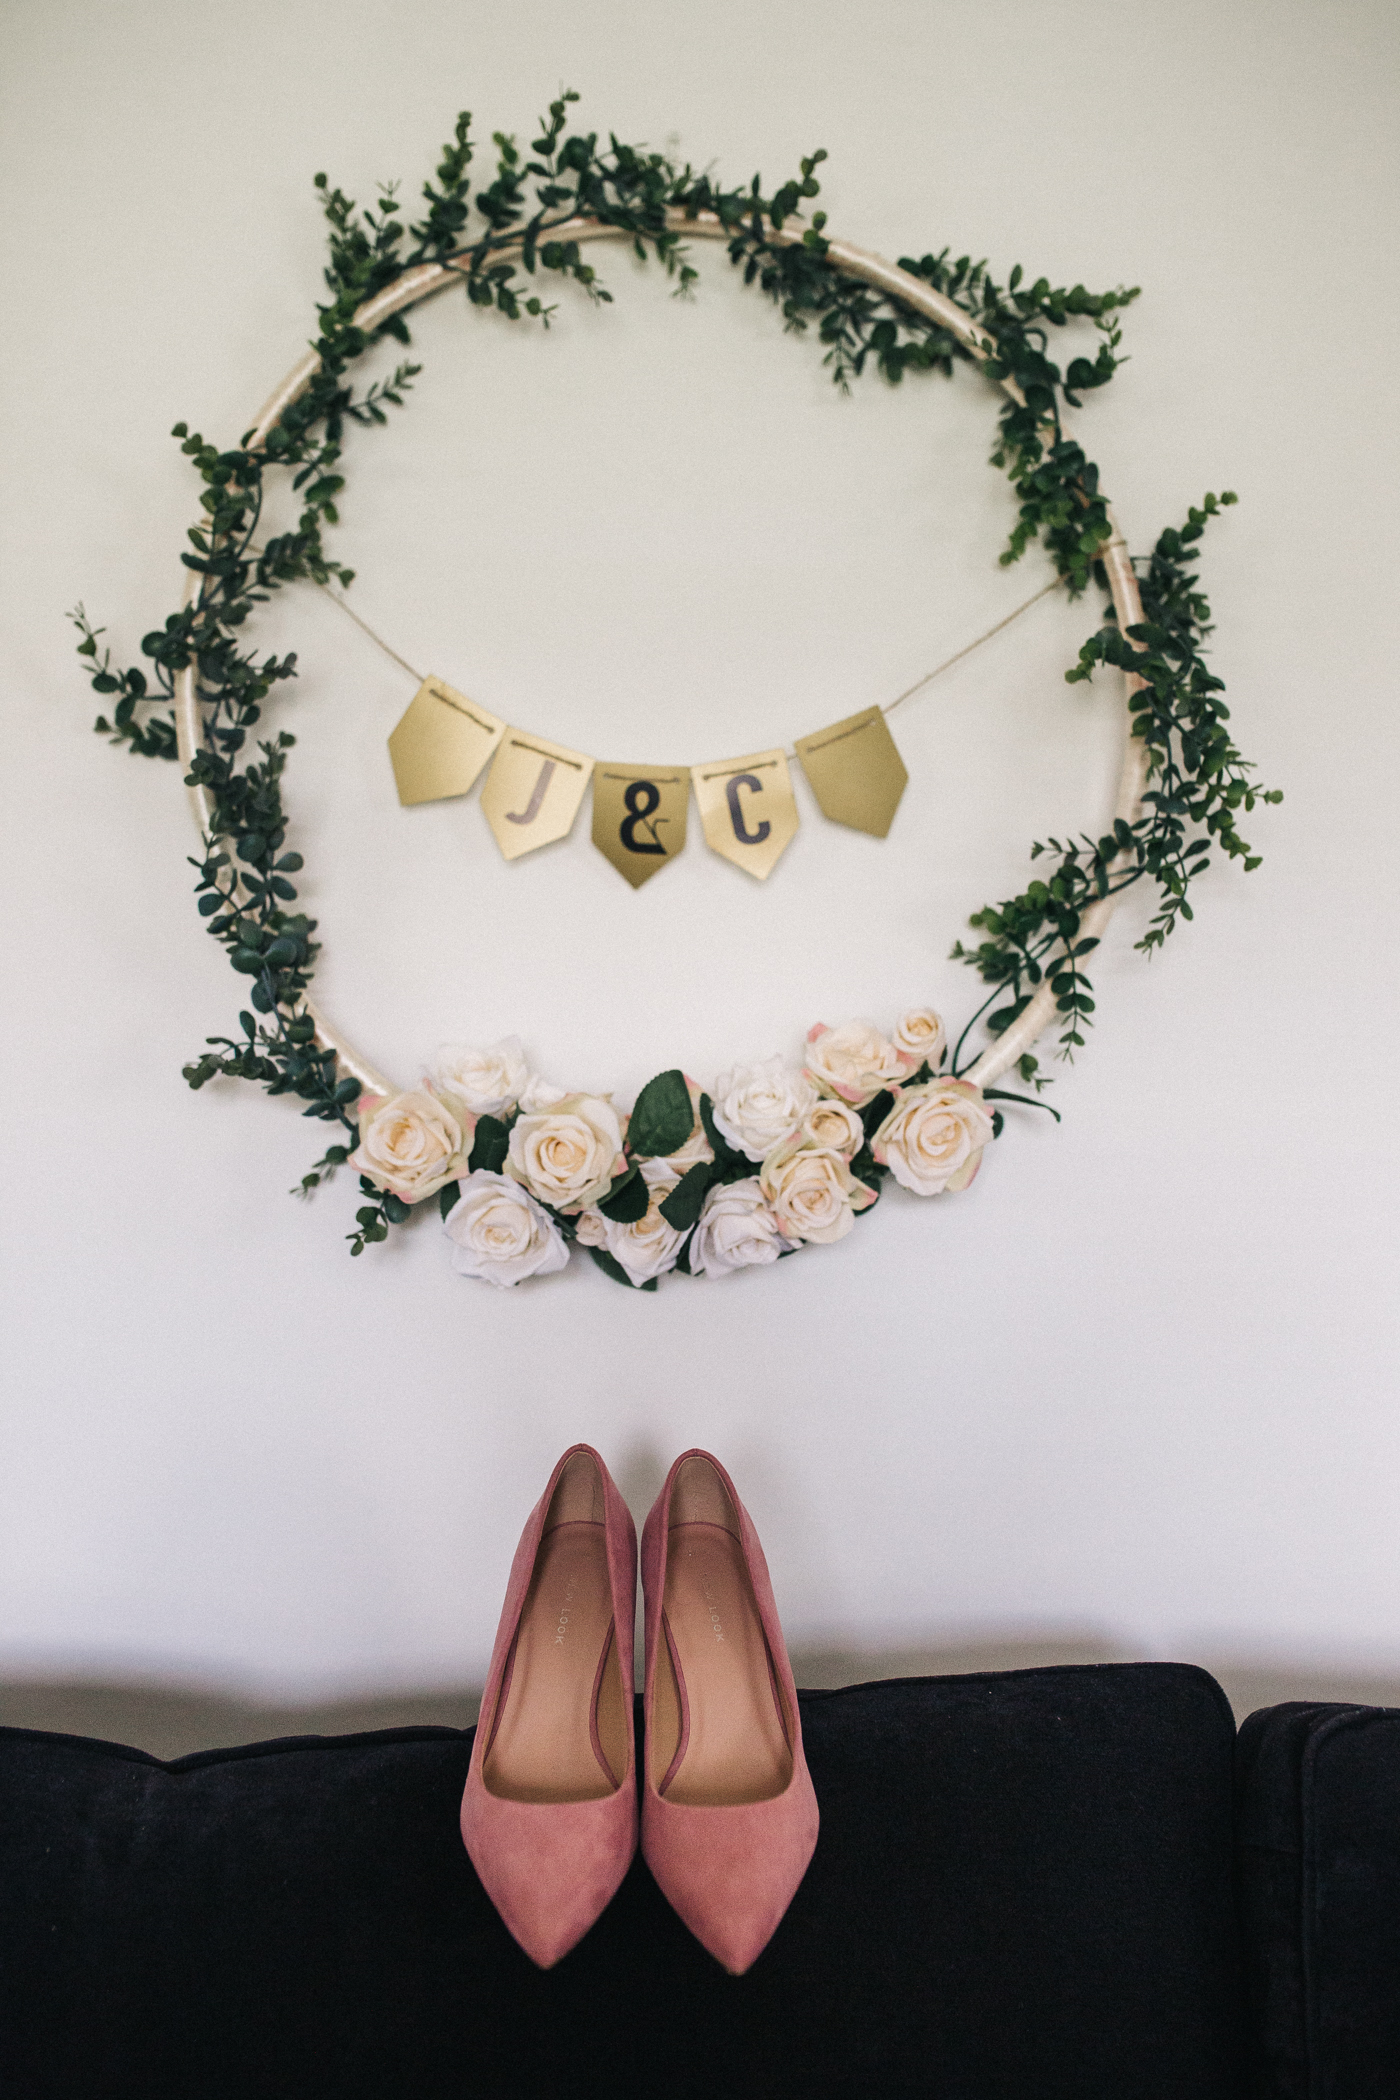 pink wedding shoes and a wreath with flowers in the background. relaxed teesside middlesbrough wedding photographer, wedding at home